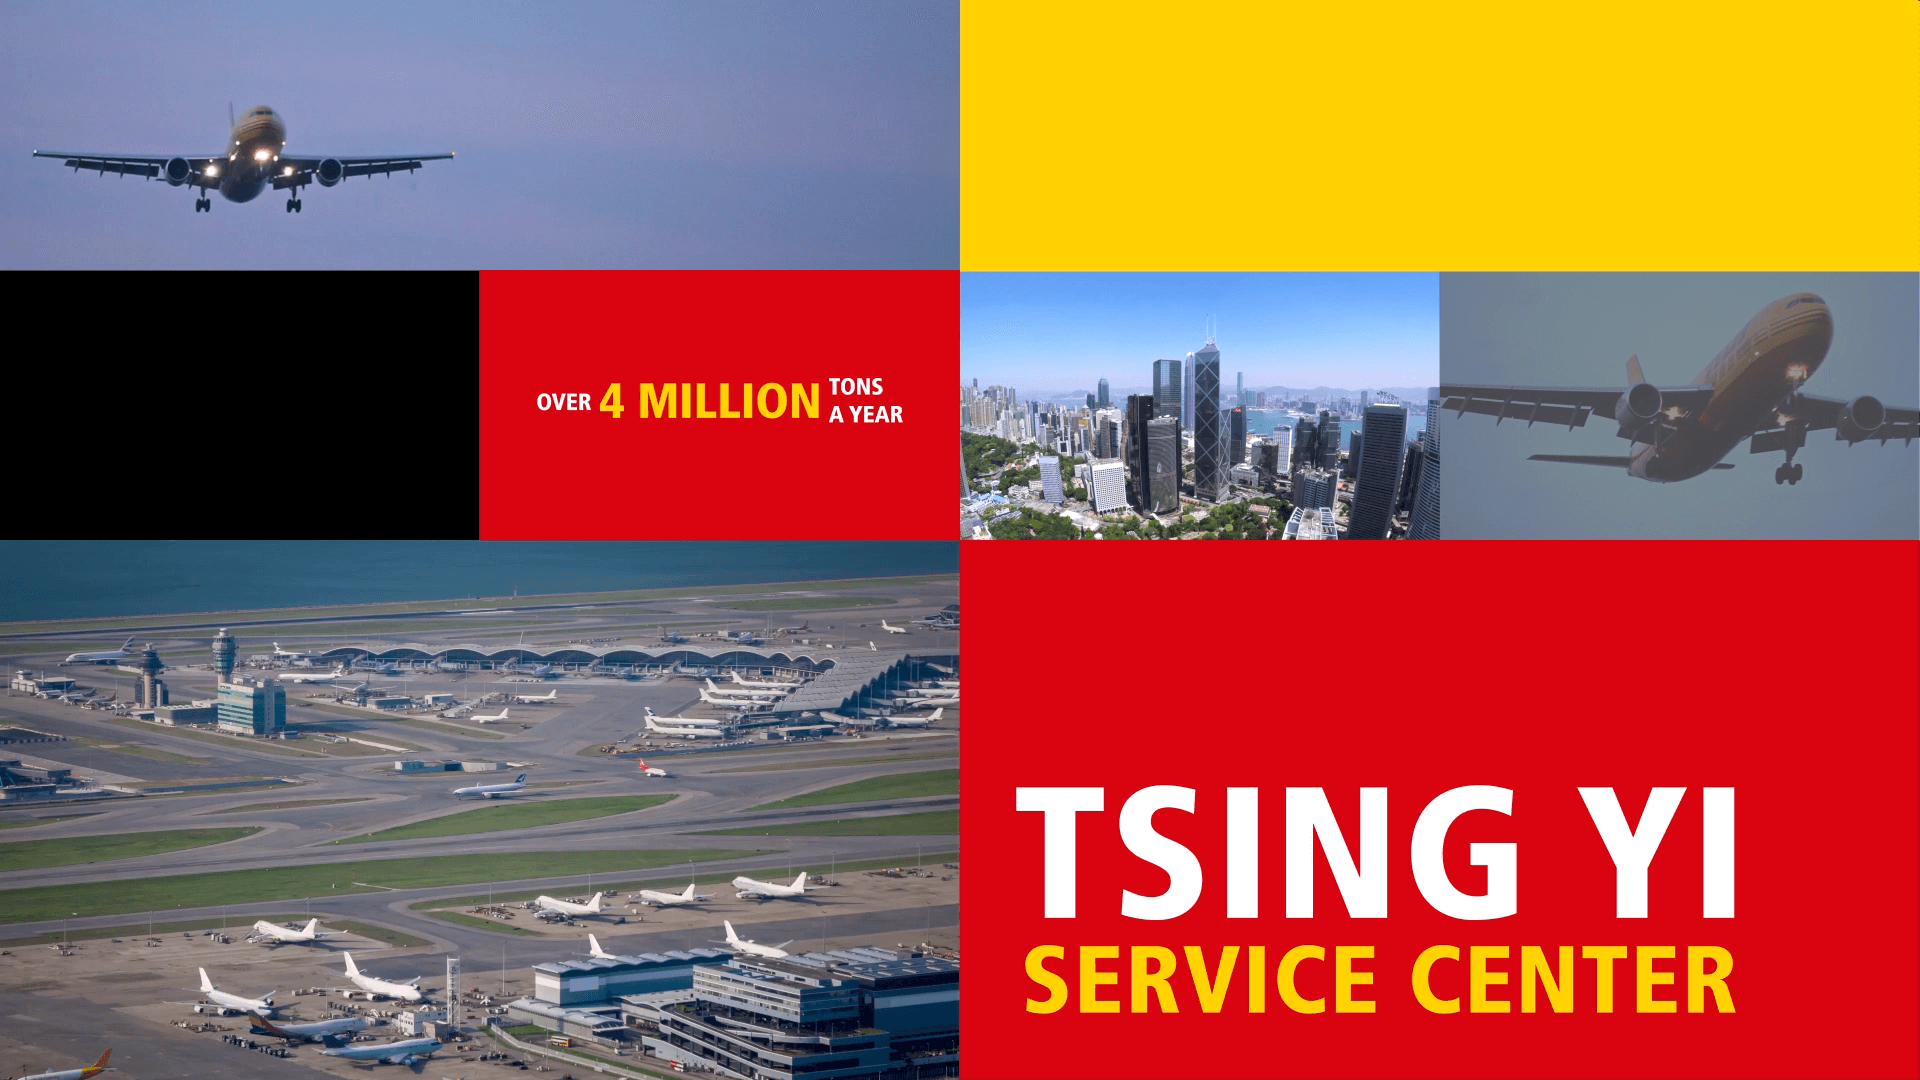 DHL Tsing Yi Service Center